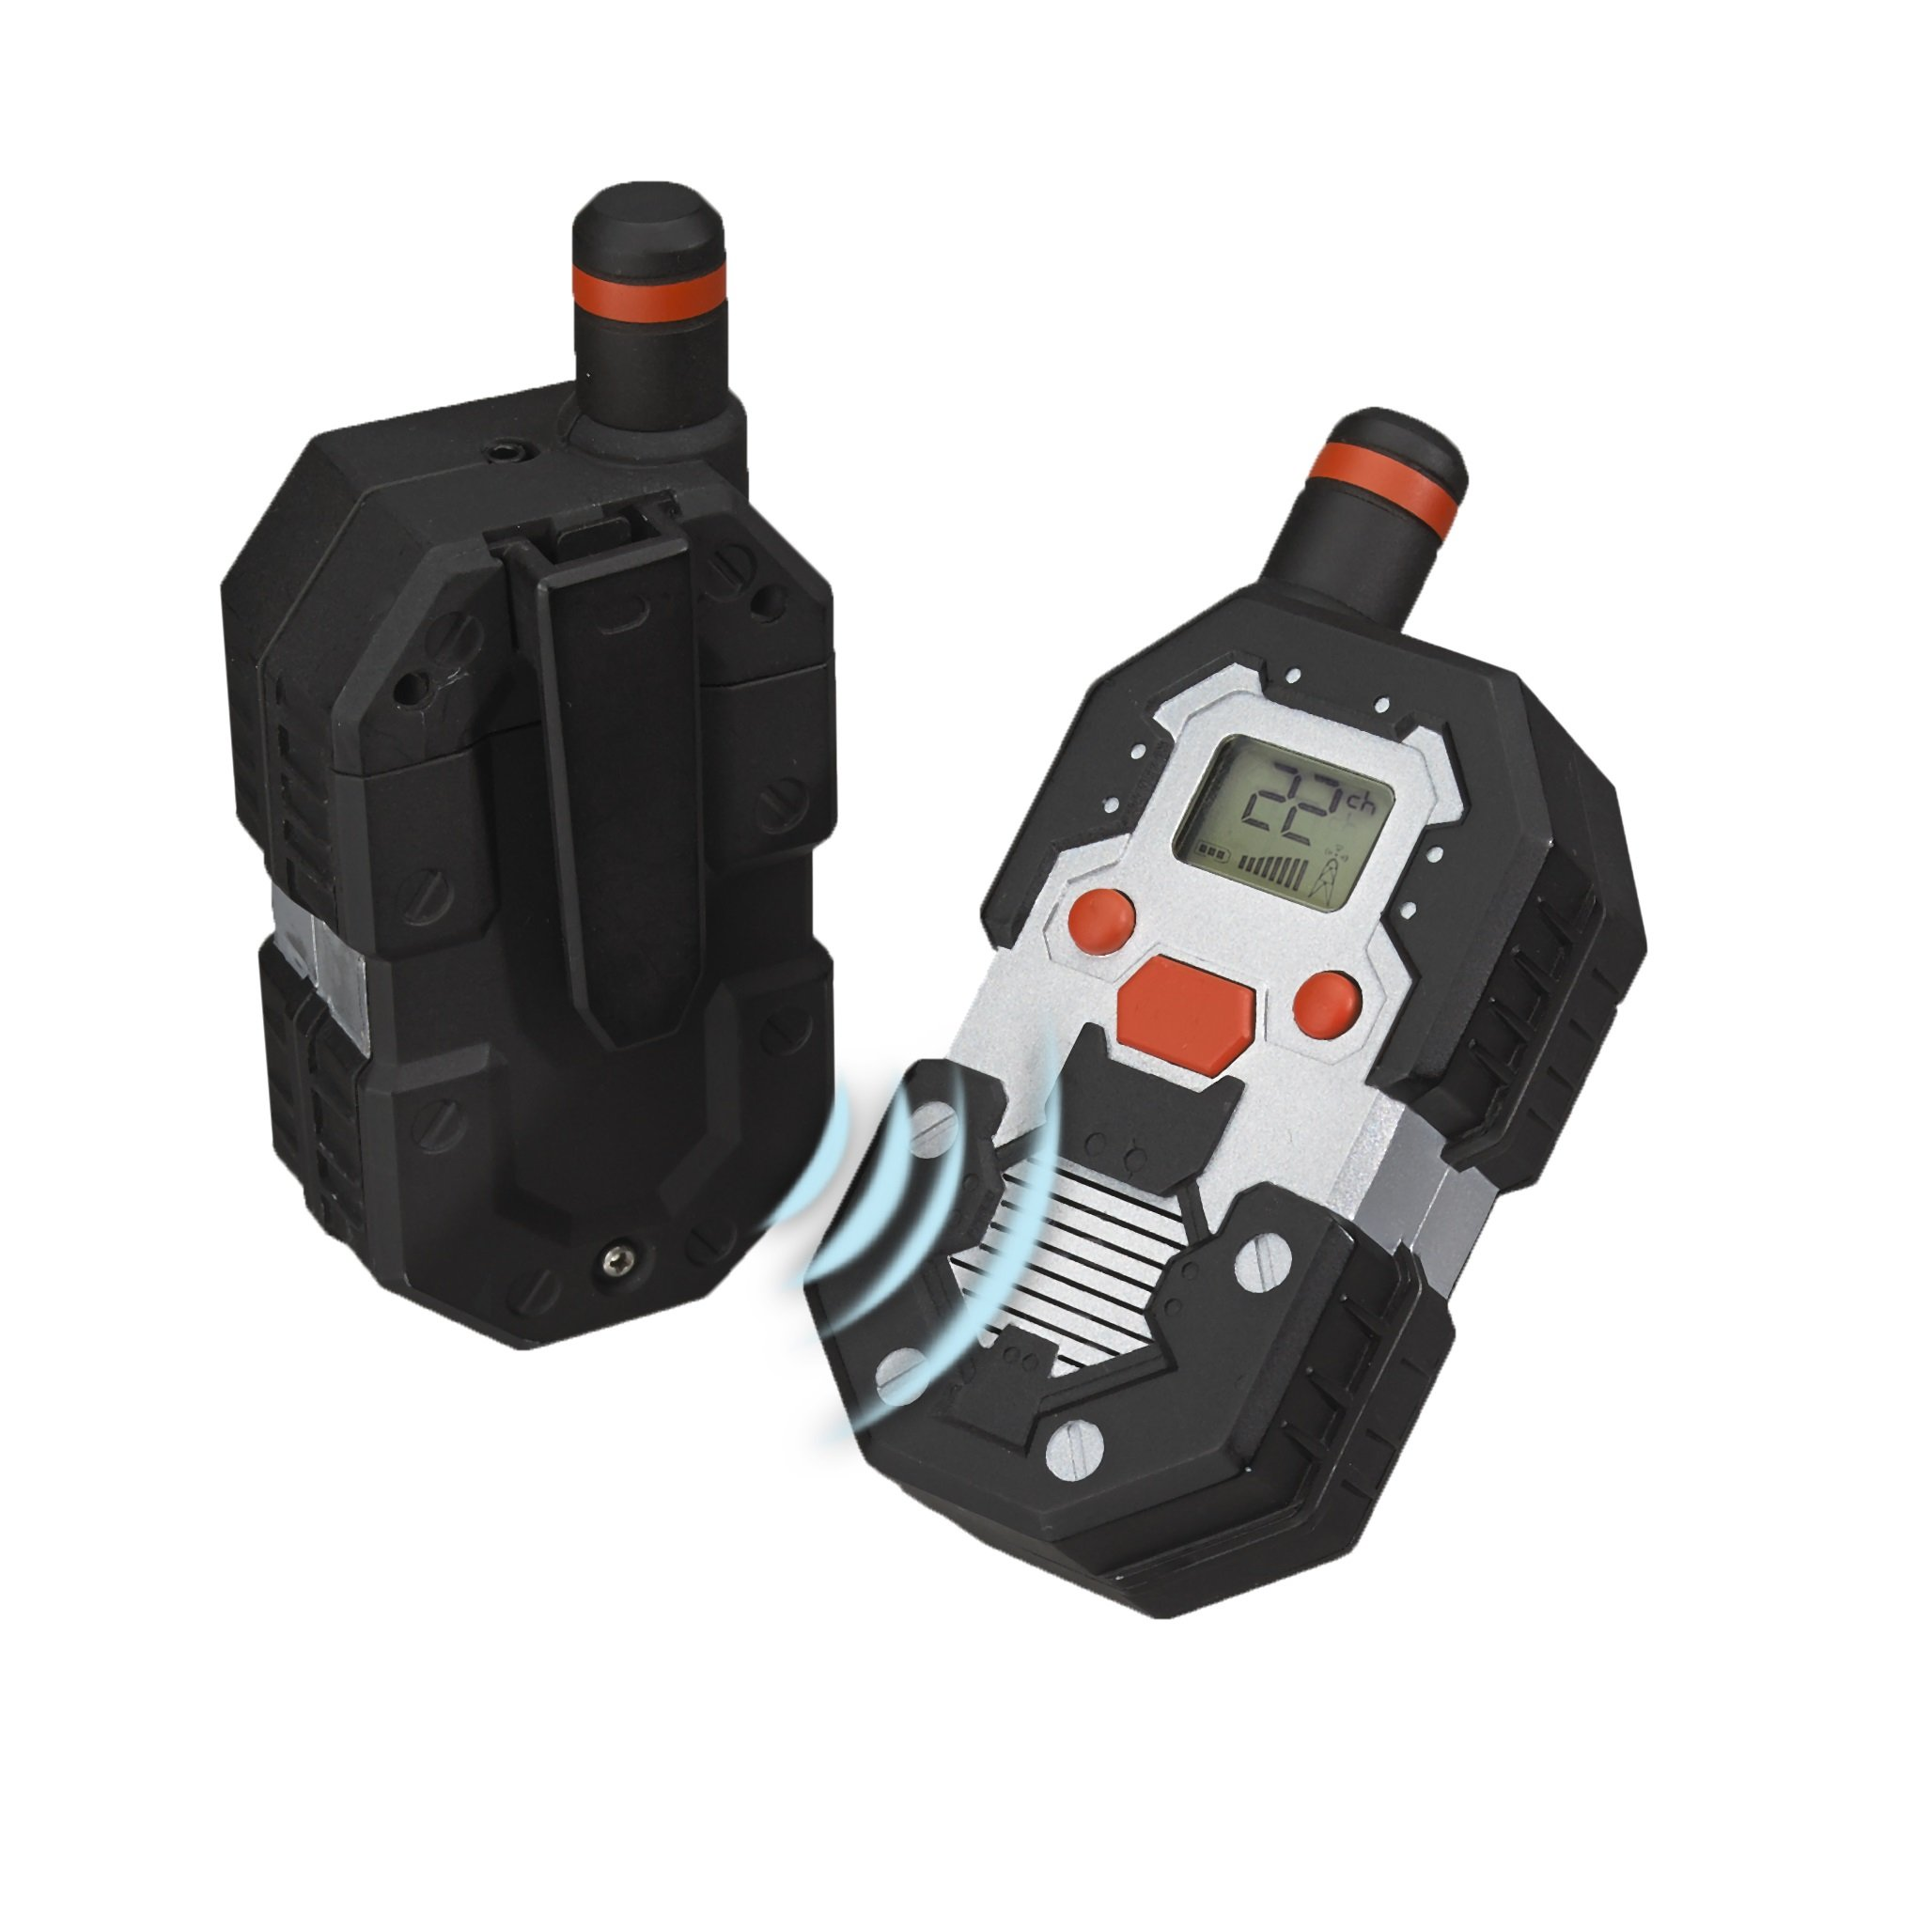 SpyX / Long Range Walkie Talkies - Walkie Talkie Set with Up To 2 Mile Range! 22-Channel Scan Feature makes this the Perfect addition for your spy gear collection! by MUKIKIM